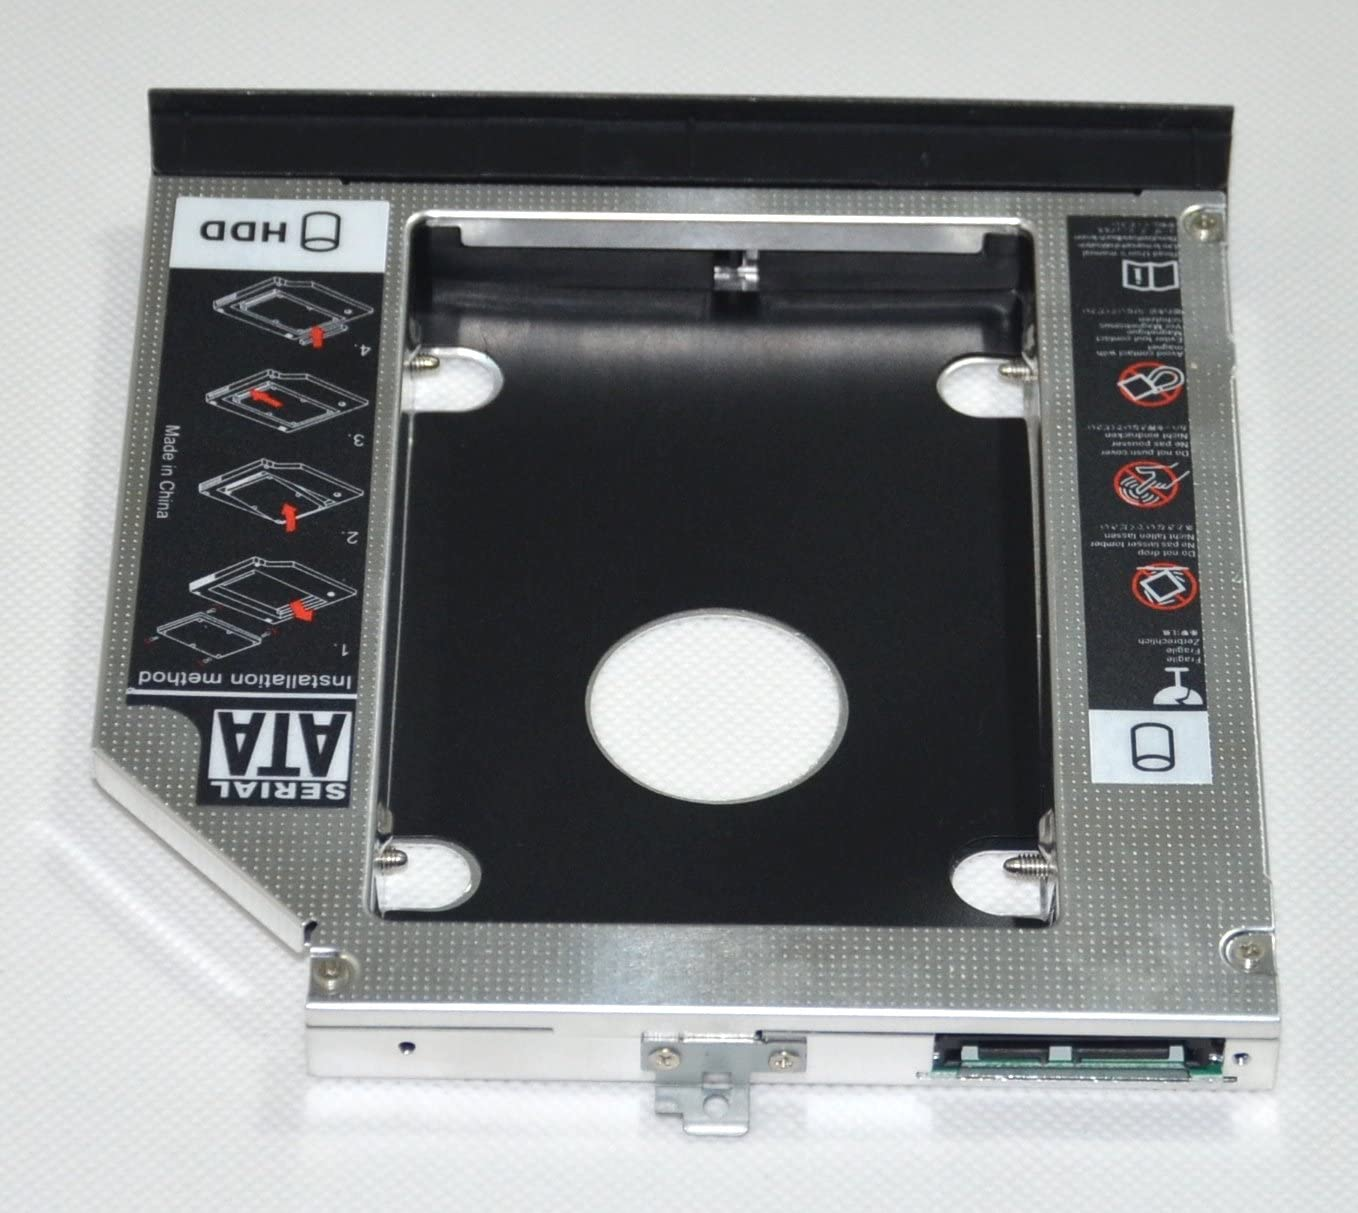 Faceplate bezel and Mounting Bracket DY-tech 2nd HDD SSD Hard Drive Enclosure Caddy for Dell Latitude E5520 E5420